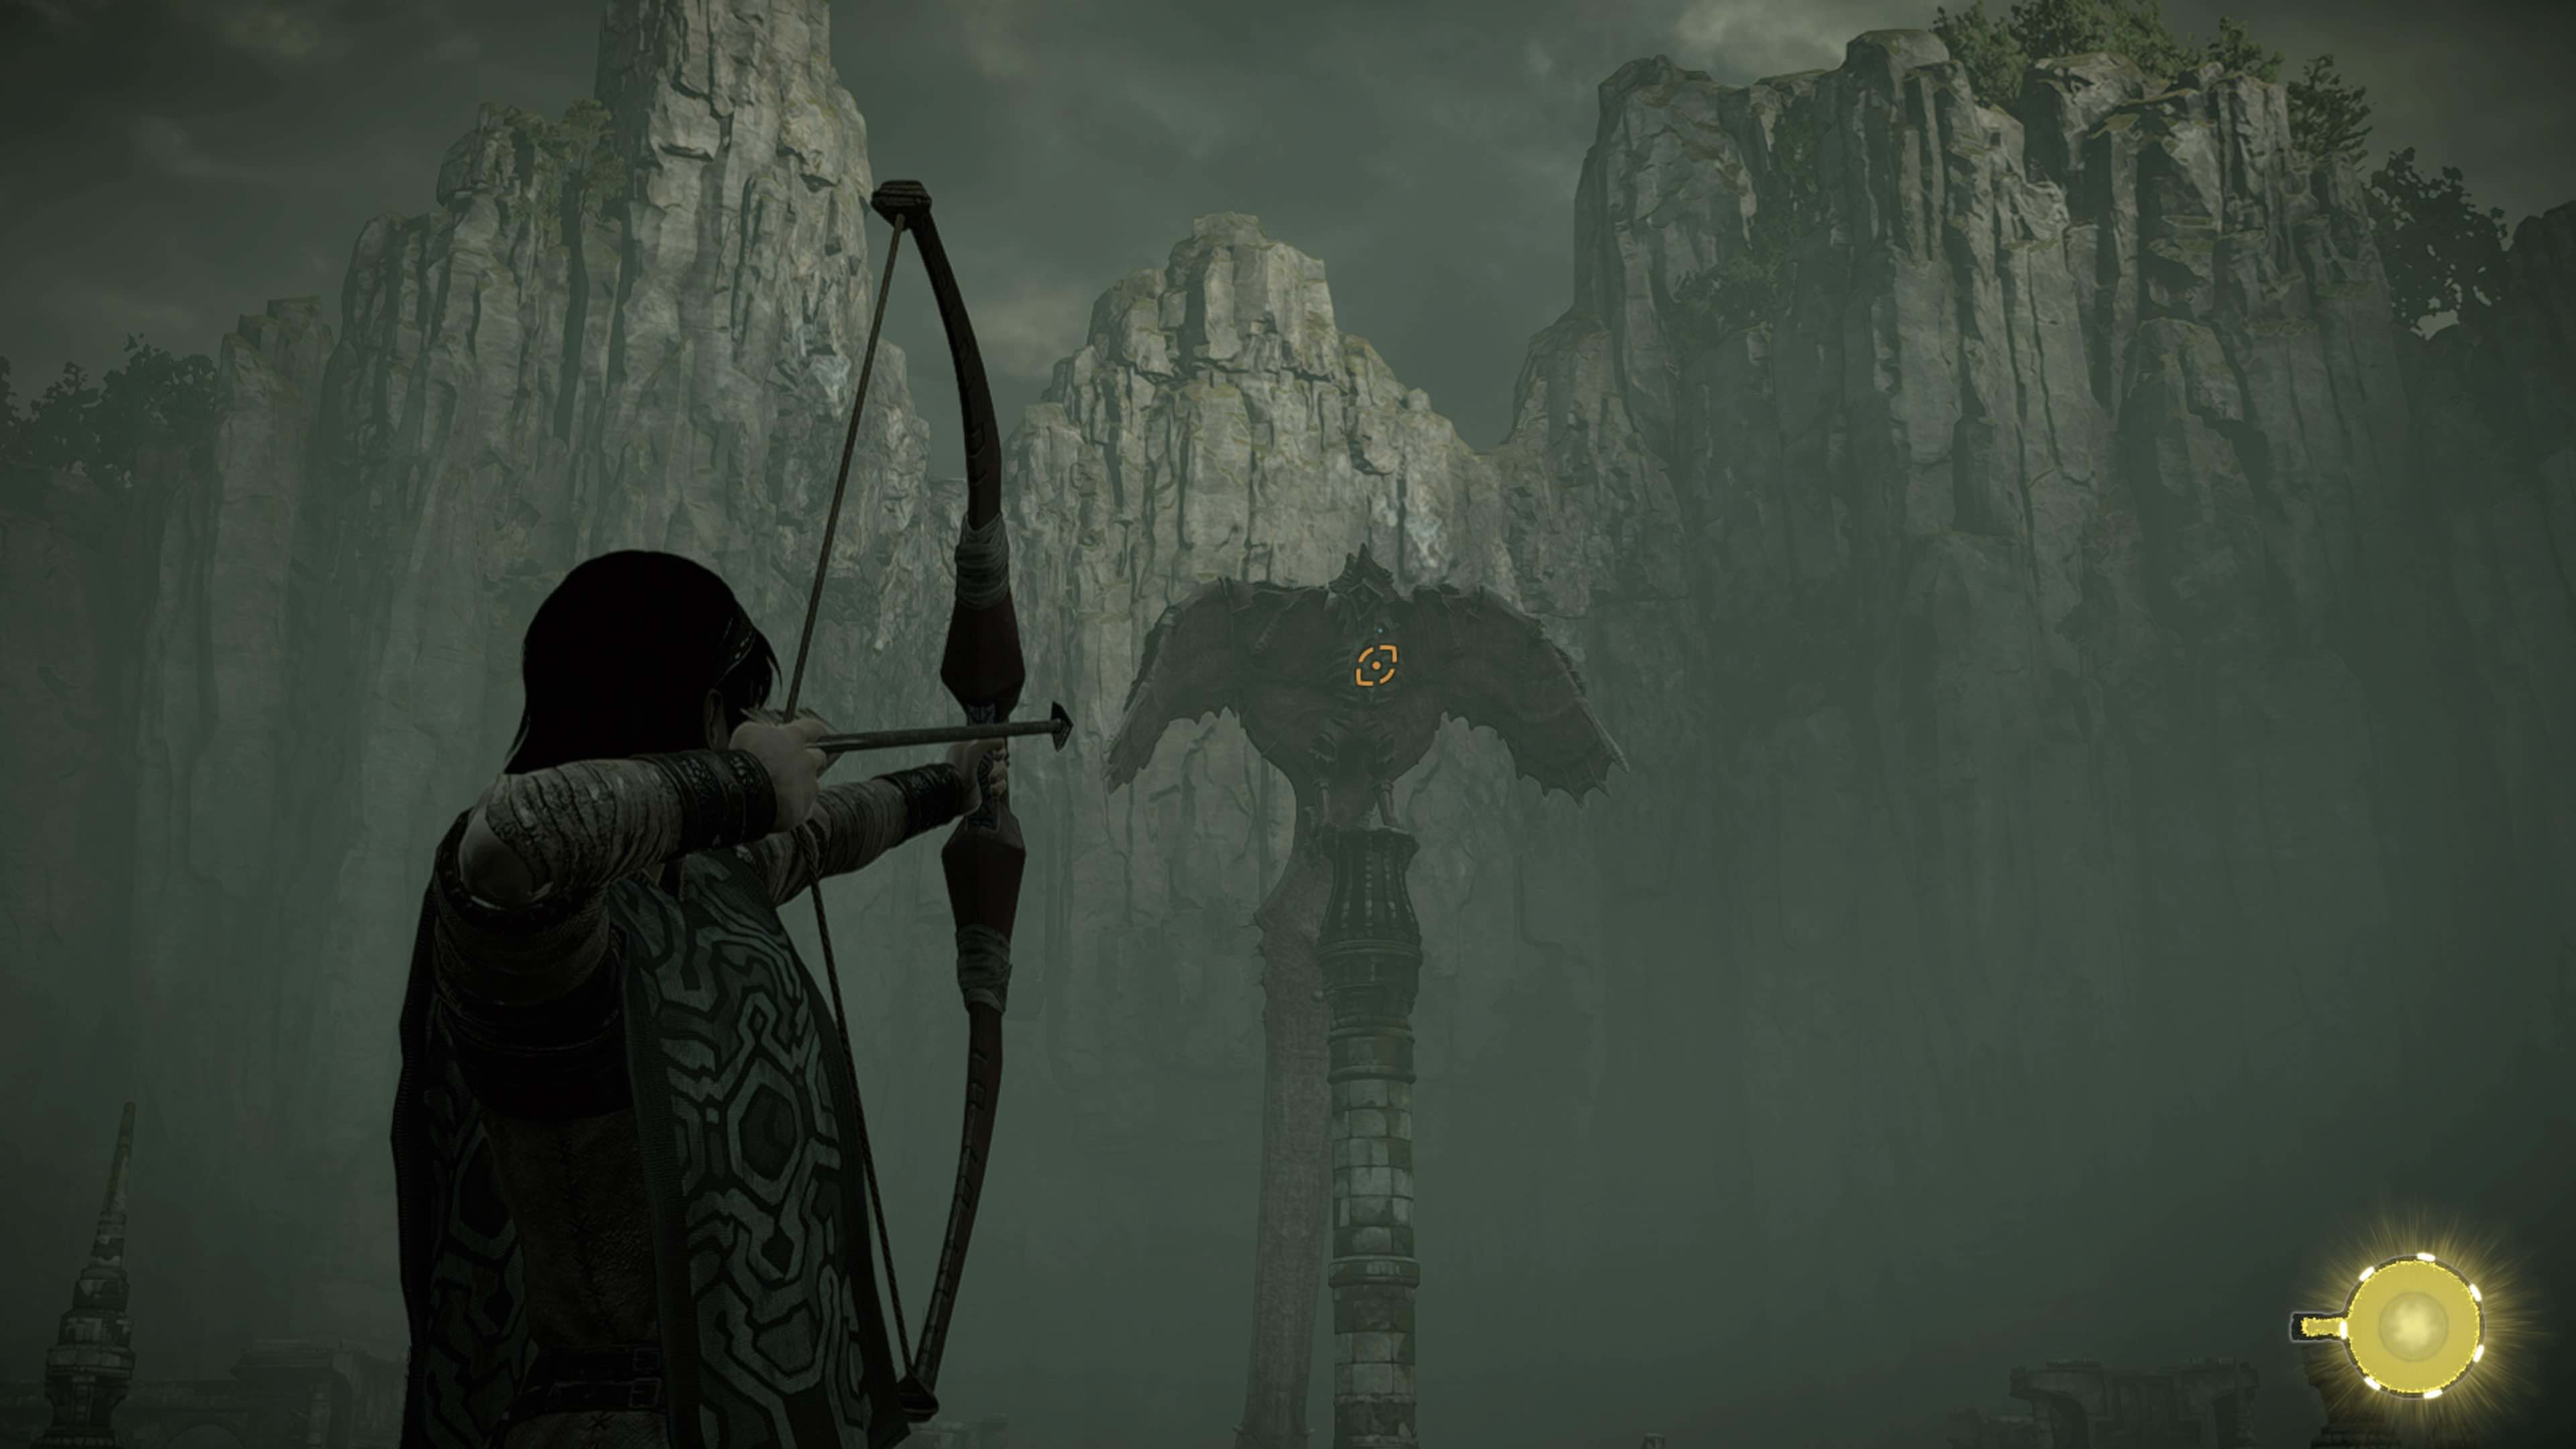 Shadow_of_the_Colossus_Coloso_5_3